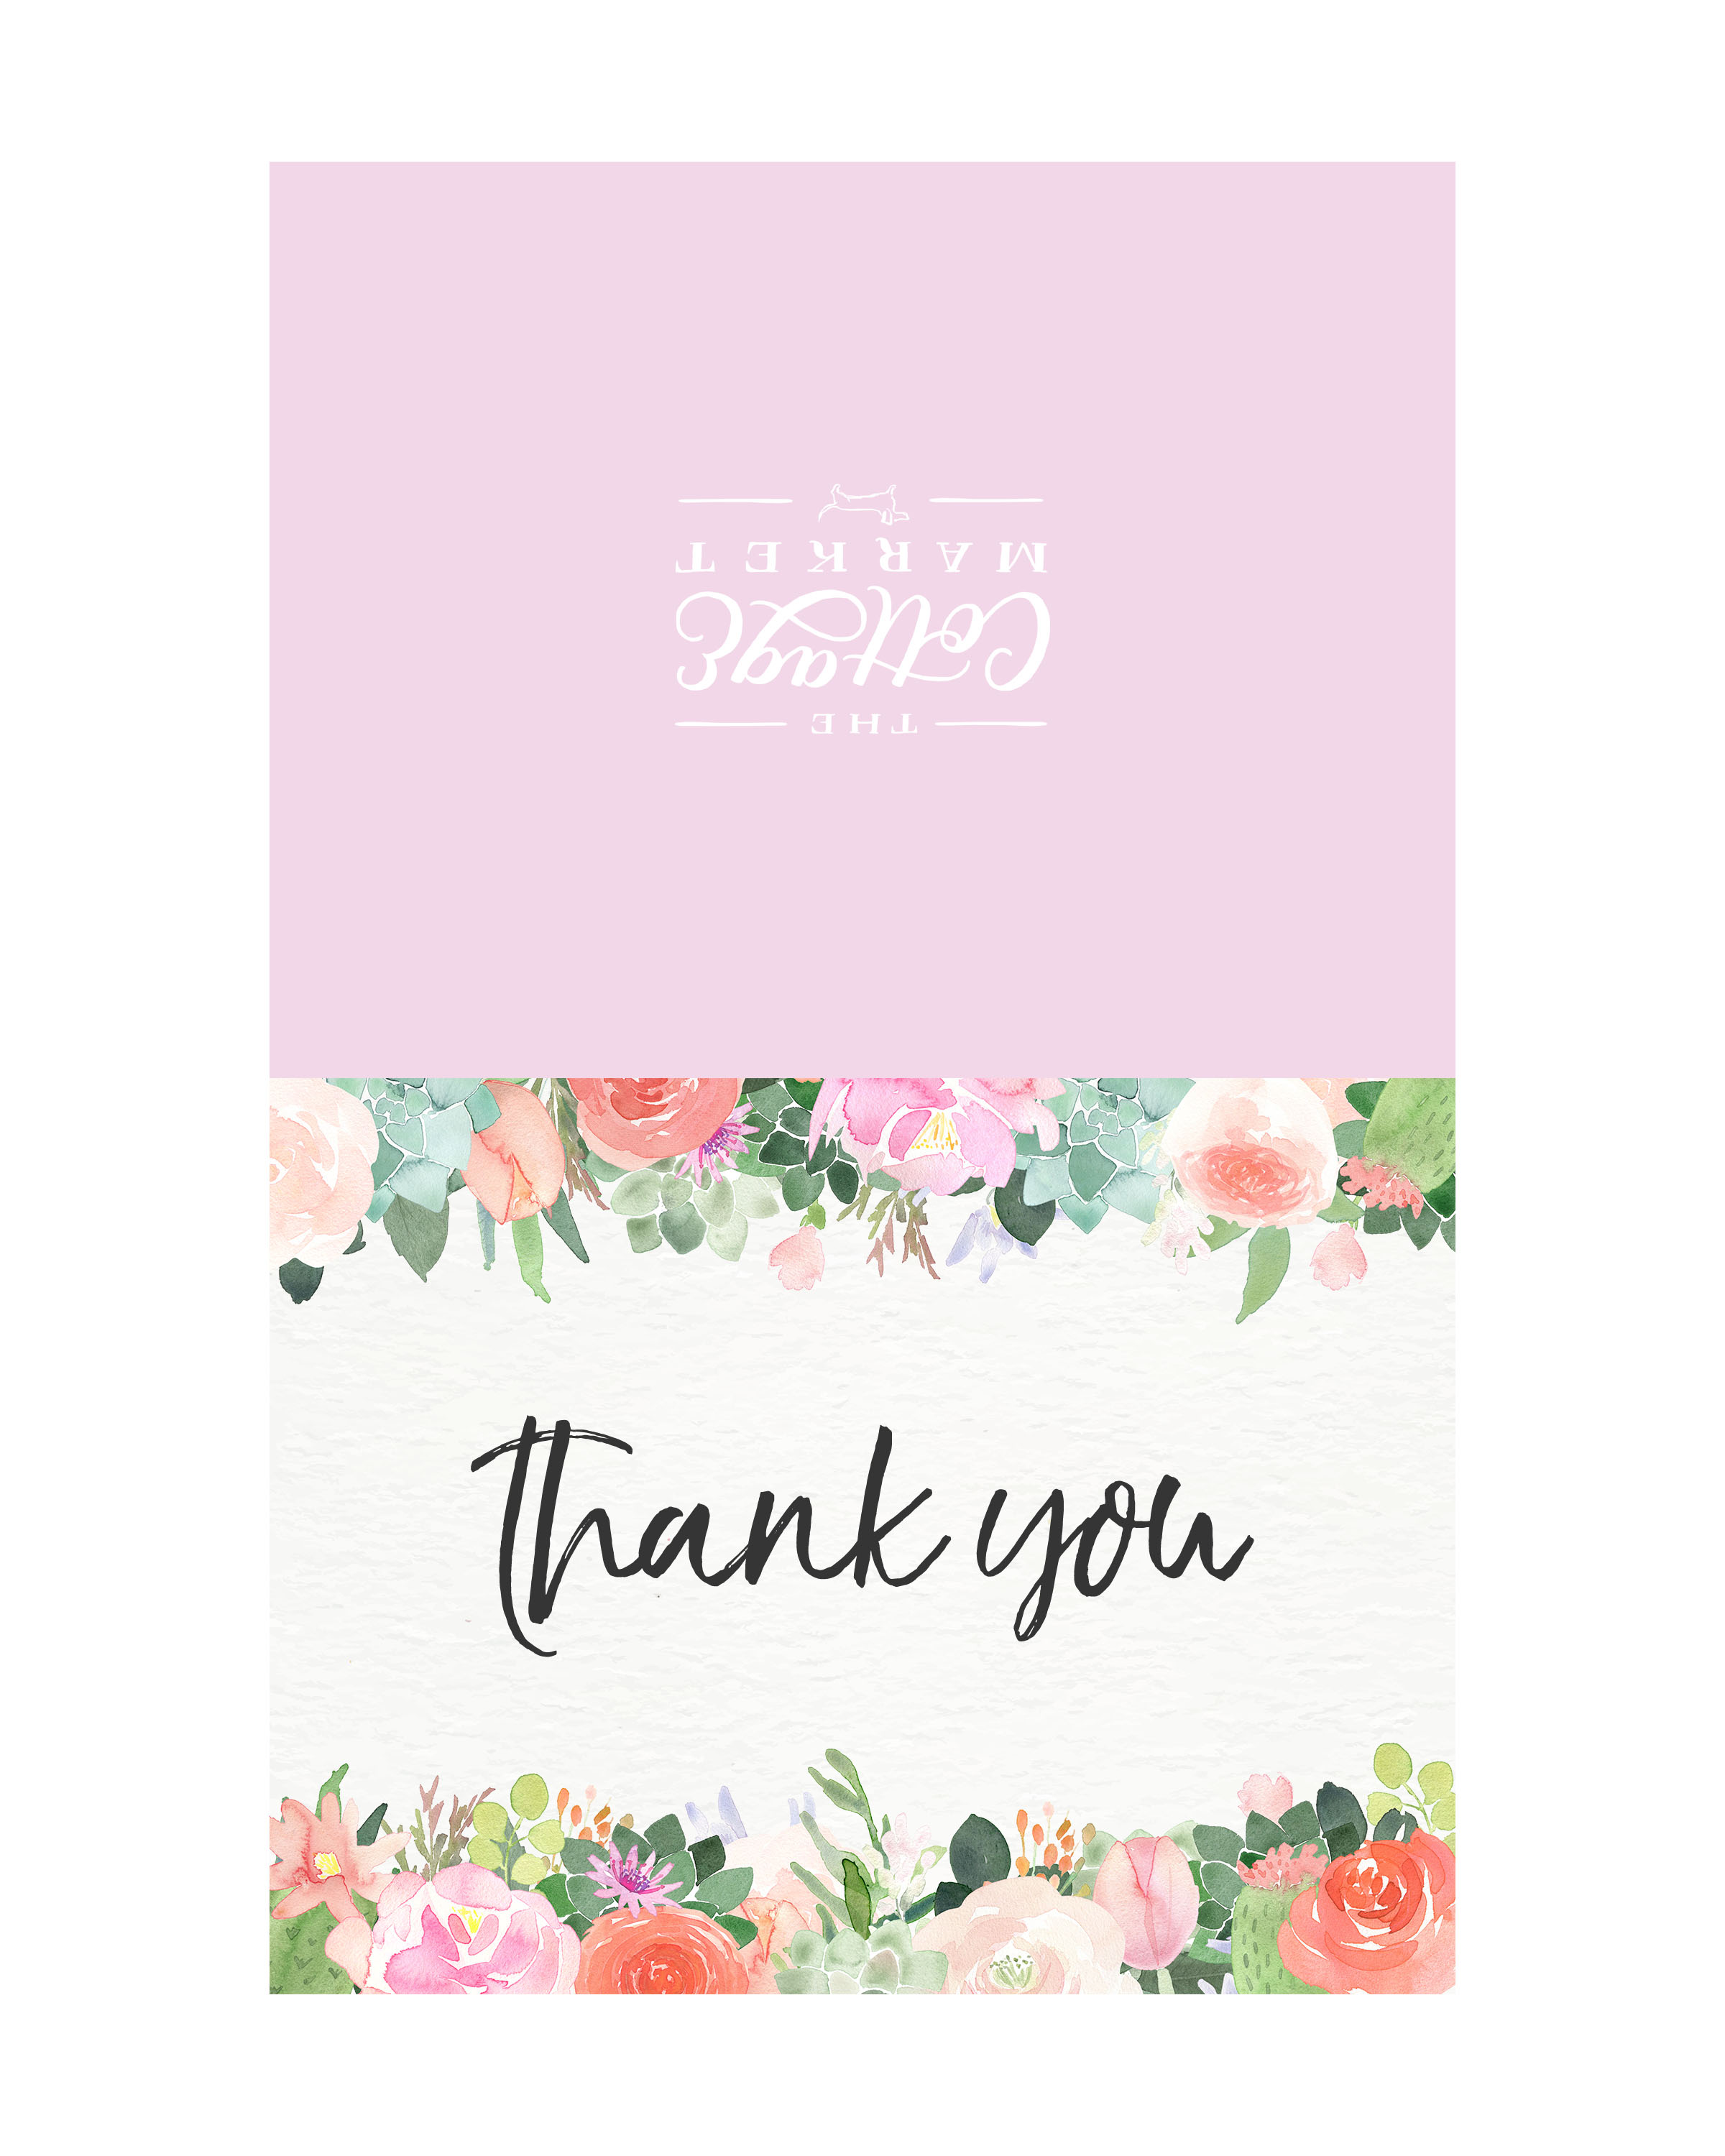 photograph relating to Printable Thank You Cards known as 10 Absolutely free Printable Thank Oneself Playing cards Your self Cant Overlook - The